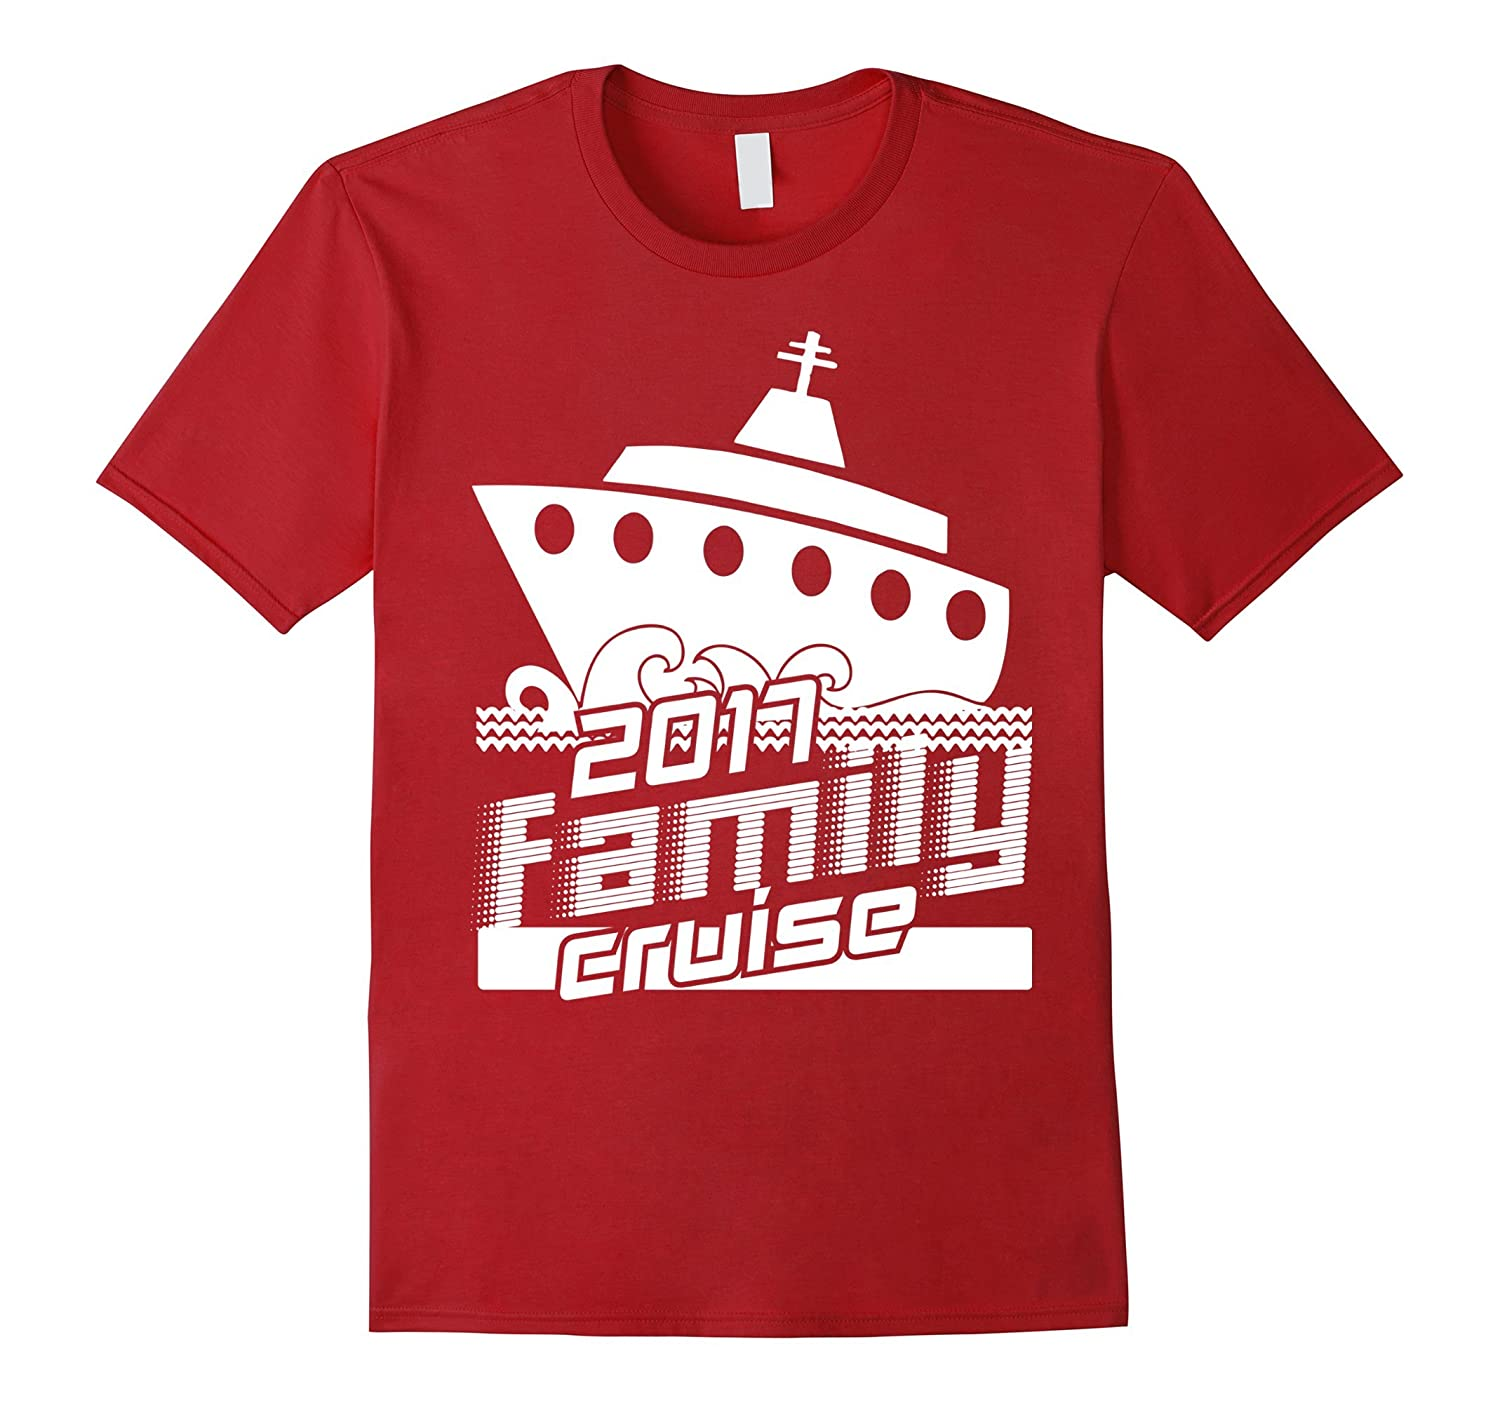 2017 Family Cruise Shirts Group Vacation Summer T Shirt-TH